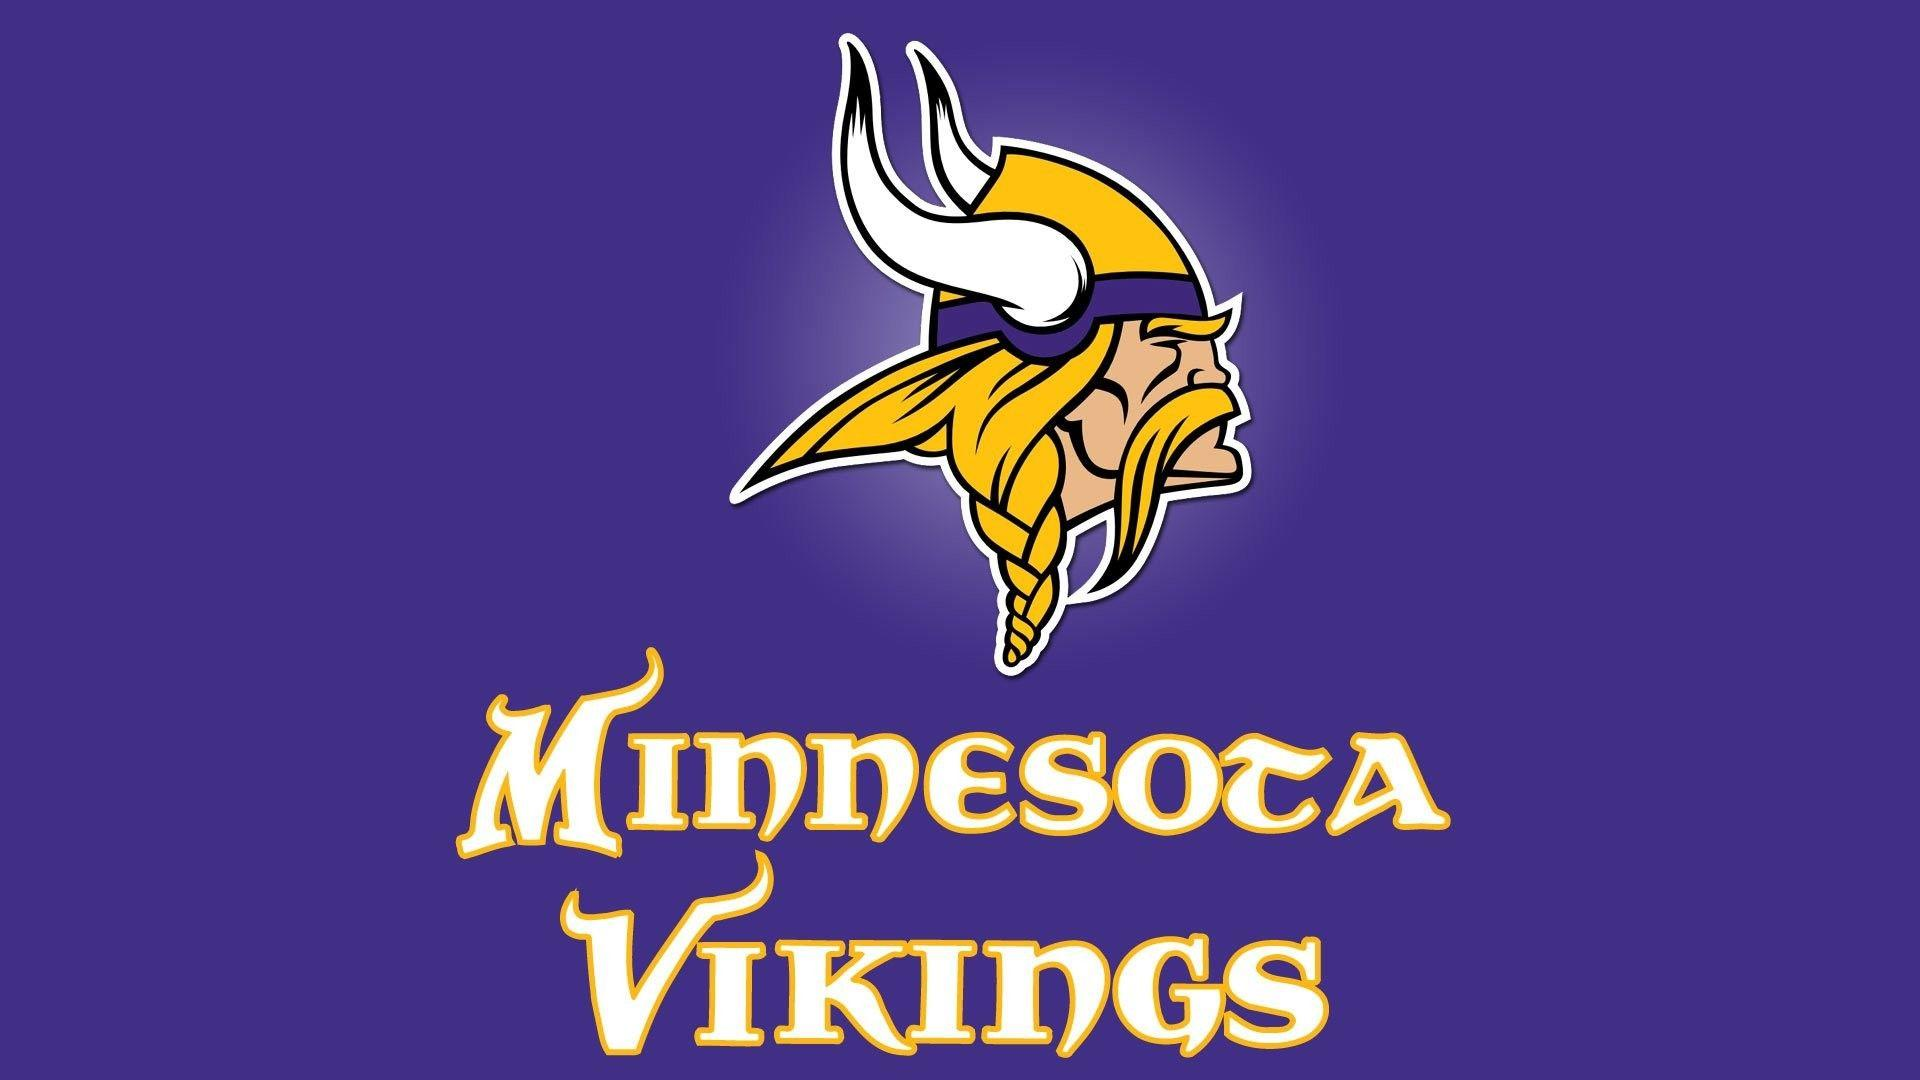 Minnesota Vikings Logo Image Wallpapers